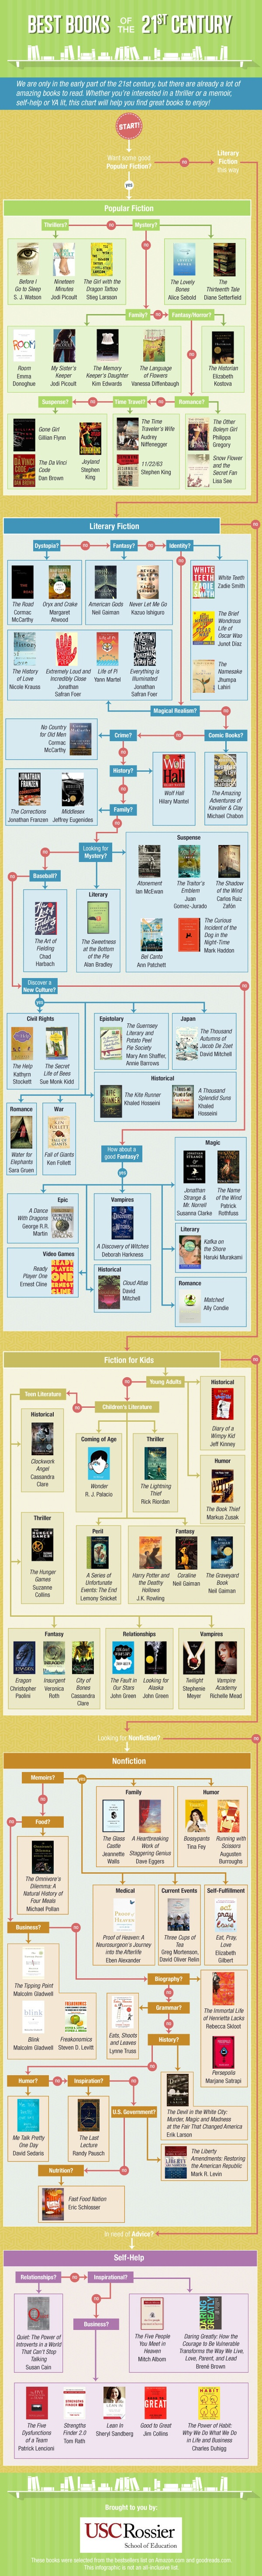 100 Best Books of the 21st Century Infographic